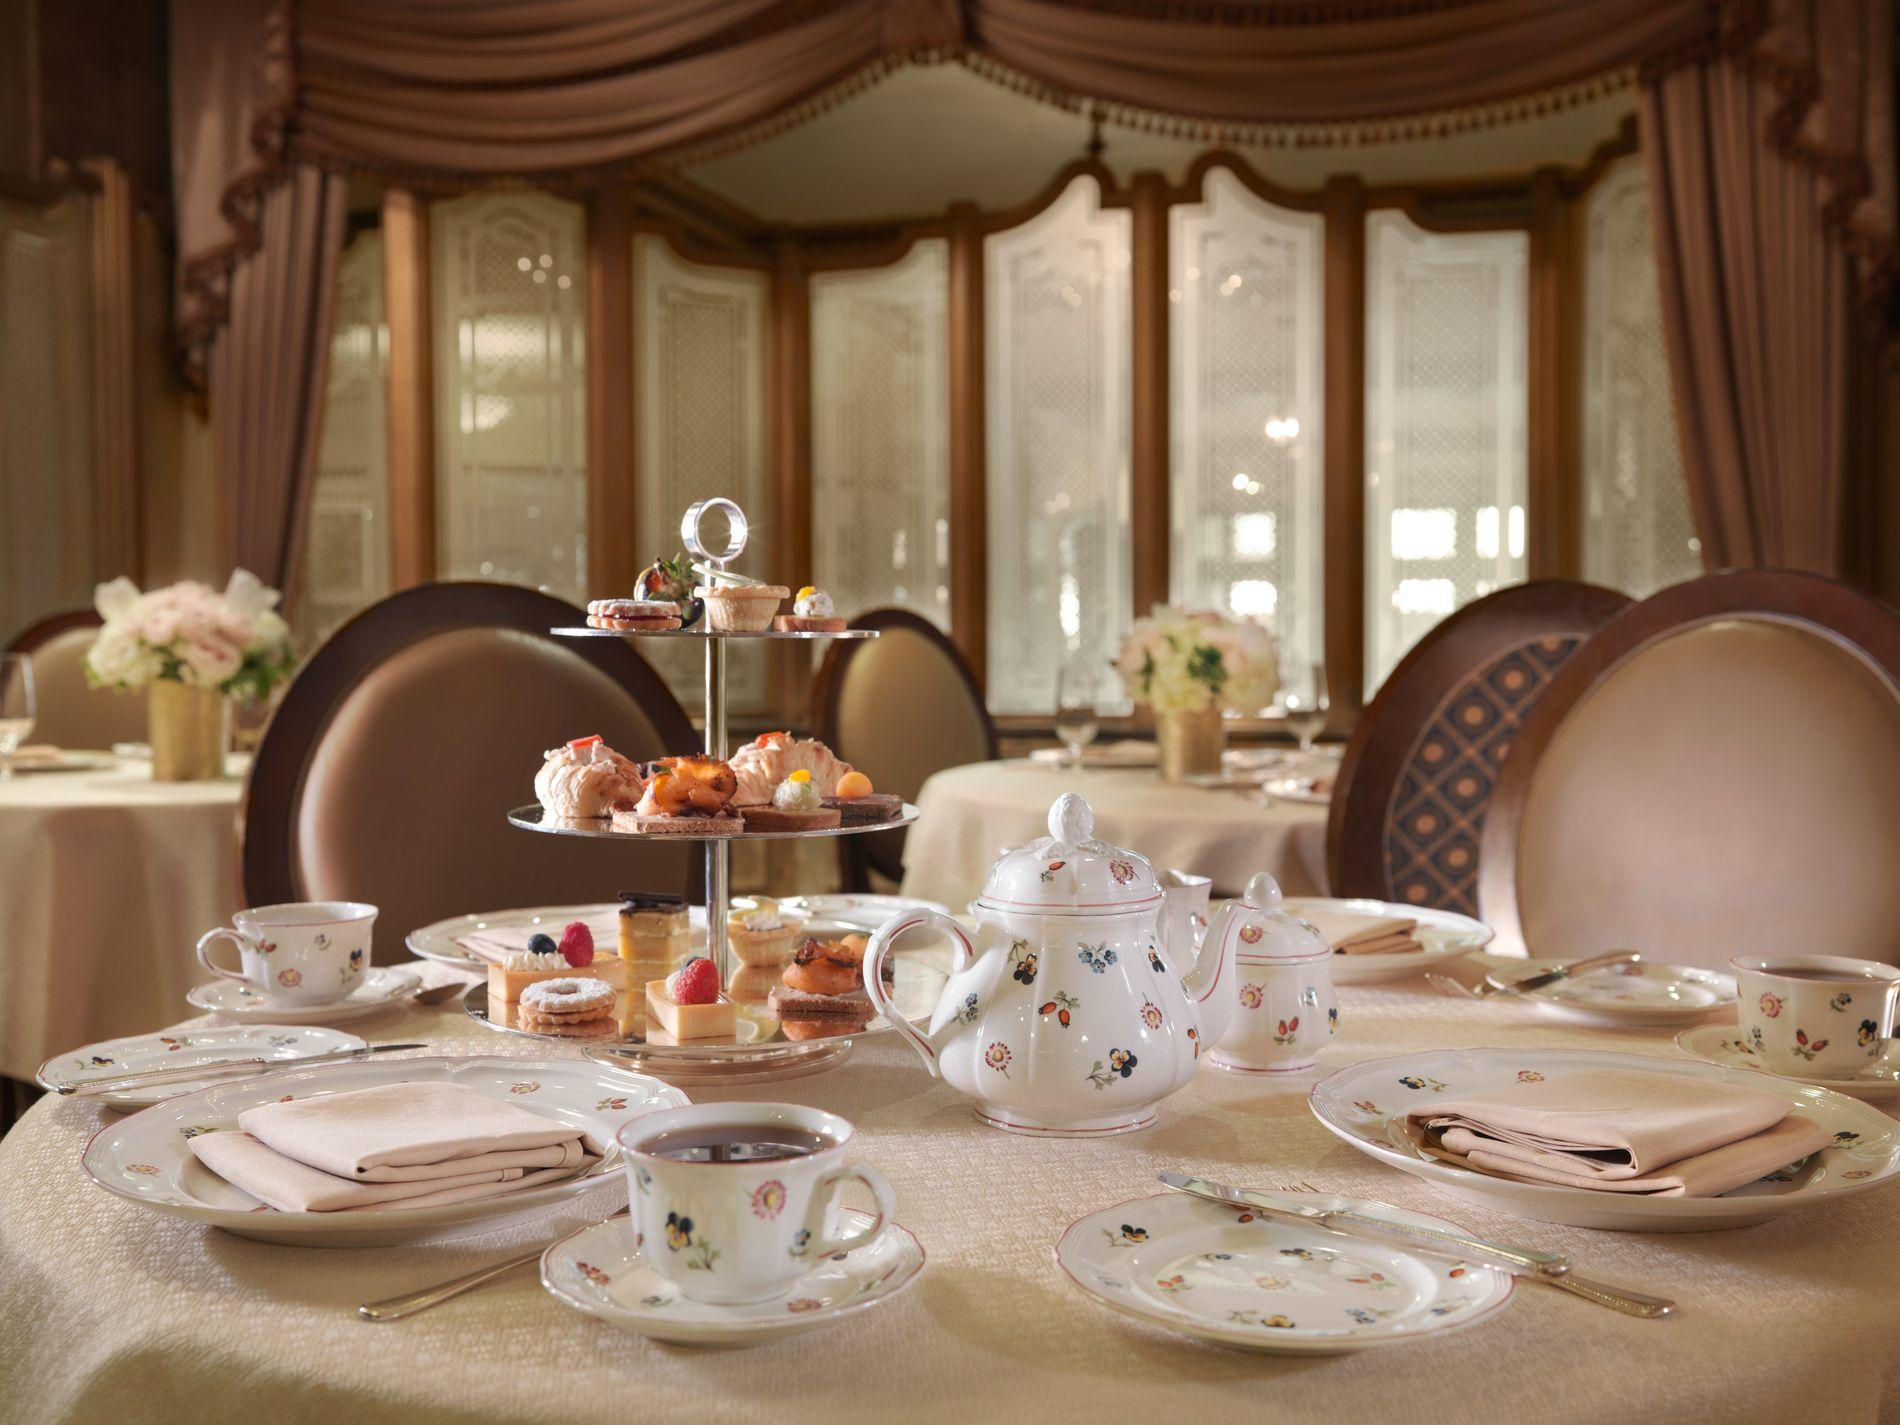 Table set with Afternoon Tea